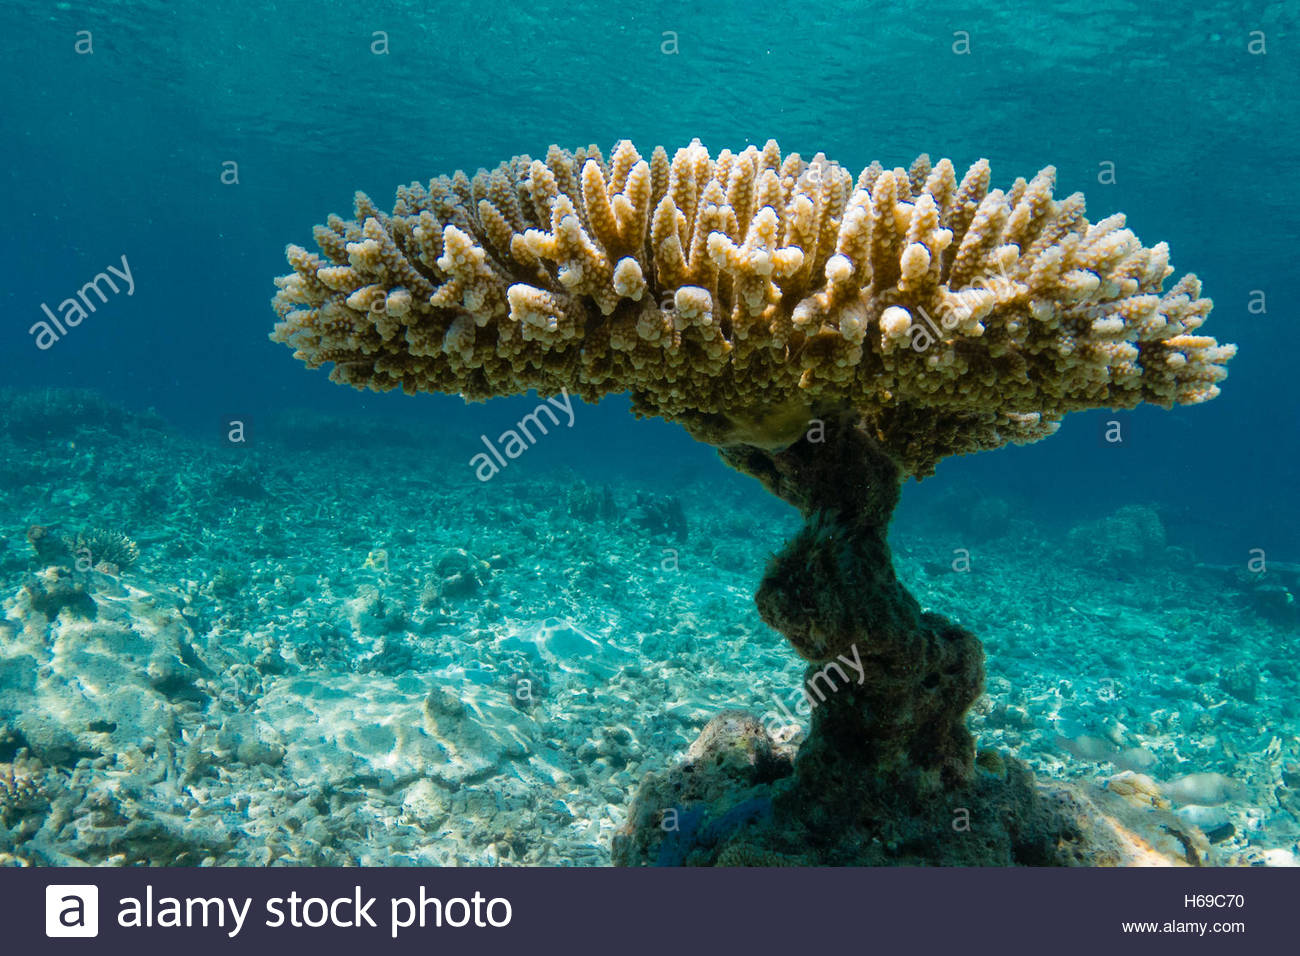 Underwater view of a coral pedestal. - Stock Image